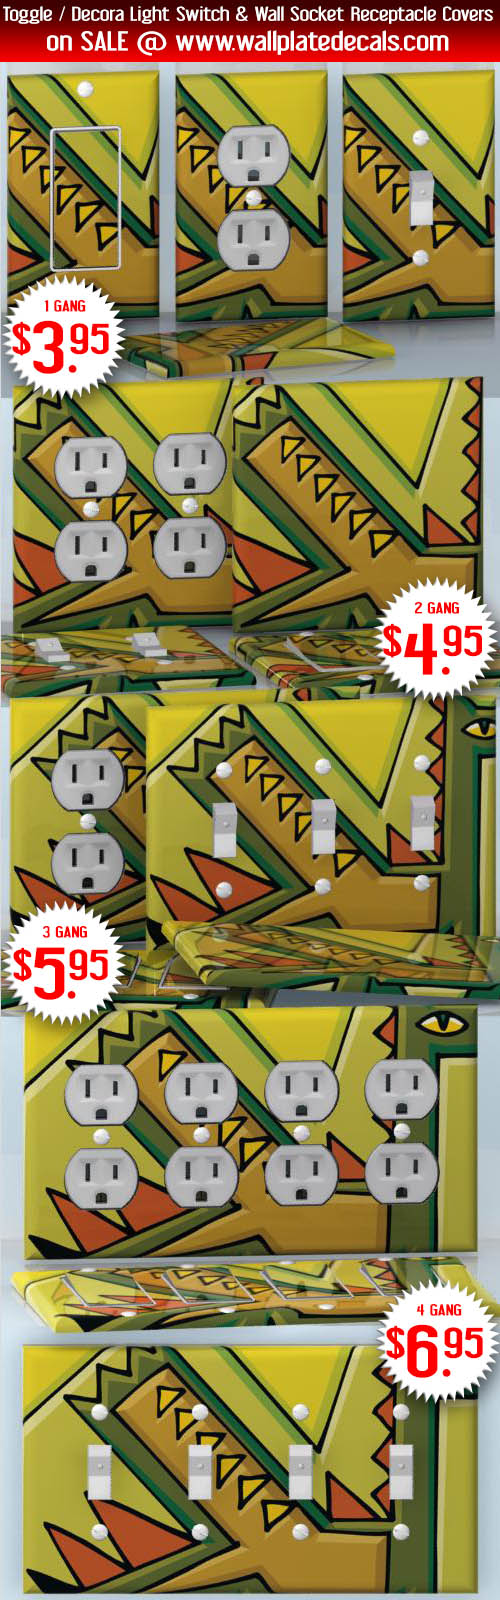 DIY Do It Yourself Home Decor - Easy to apply wall plate wraps | Dragon Art Green abstract dragon wallplate skin stickers for single, double, triple and quadruple Toggle and Decora Light Switches, Wall Socket Duplex Receptacles, and blank decals without inside cuts for special outlets | On SALE now only $3.95 - $6.95